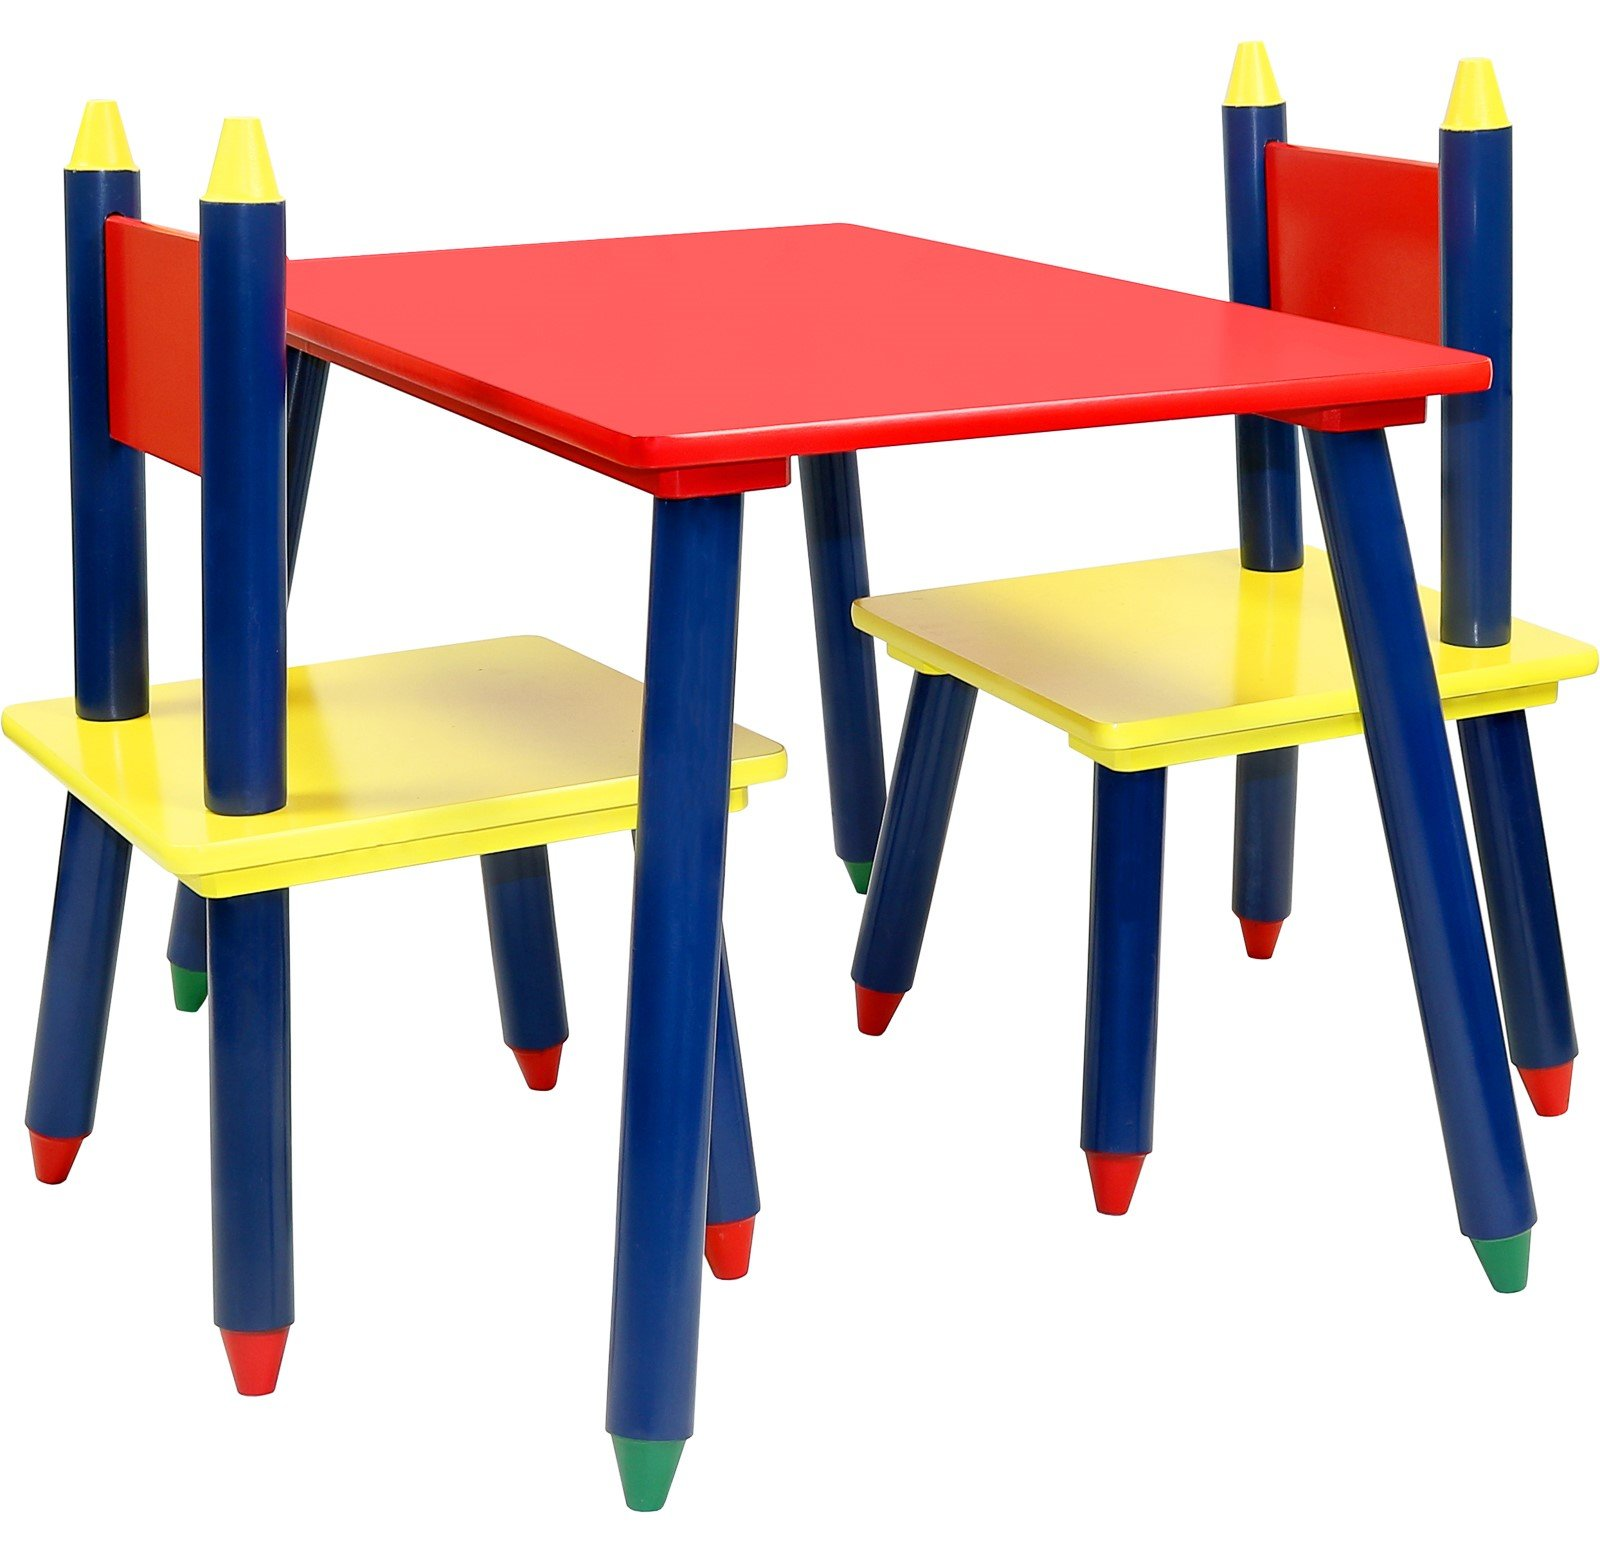 Greenco Click N' Play Wooden Kids Table and Chair Set,Crayon Themed, Play Room Furniture by Greenco